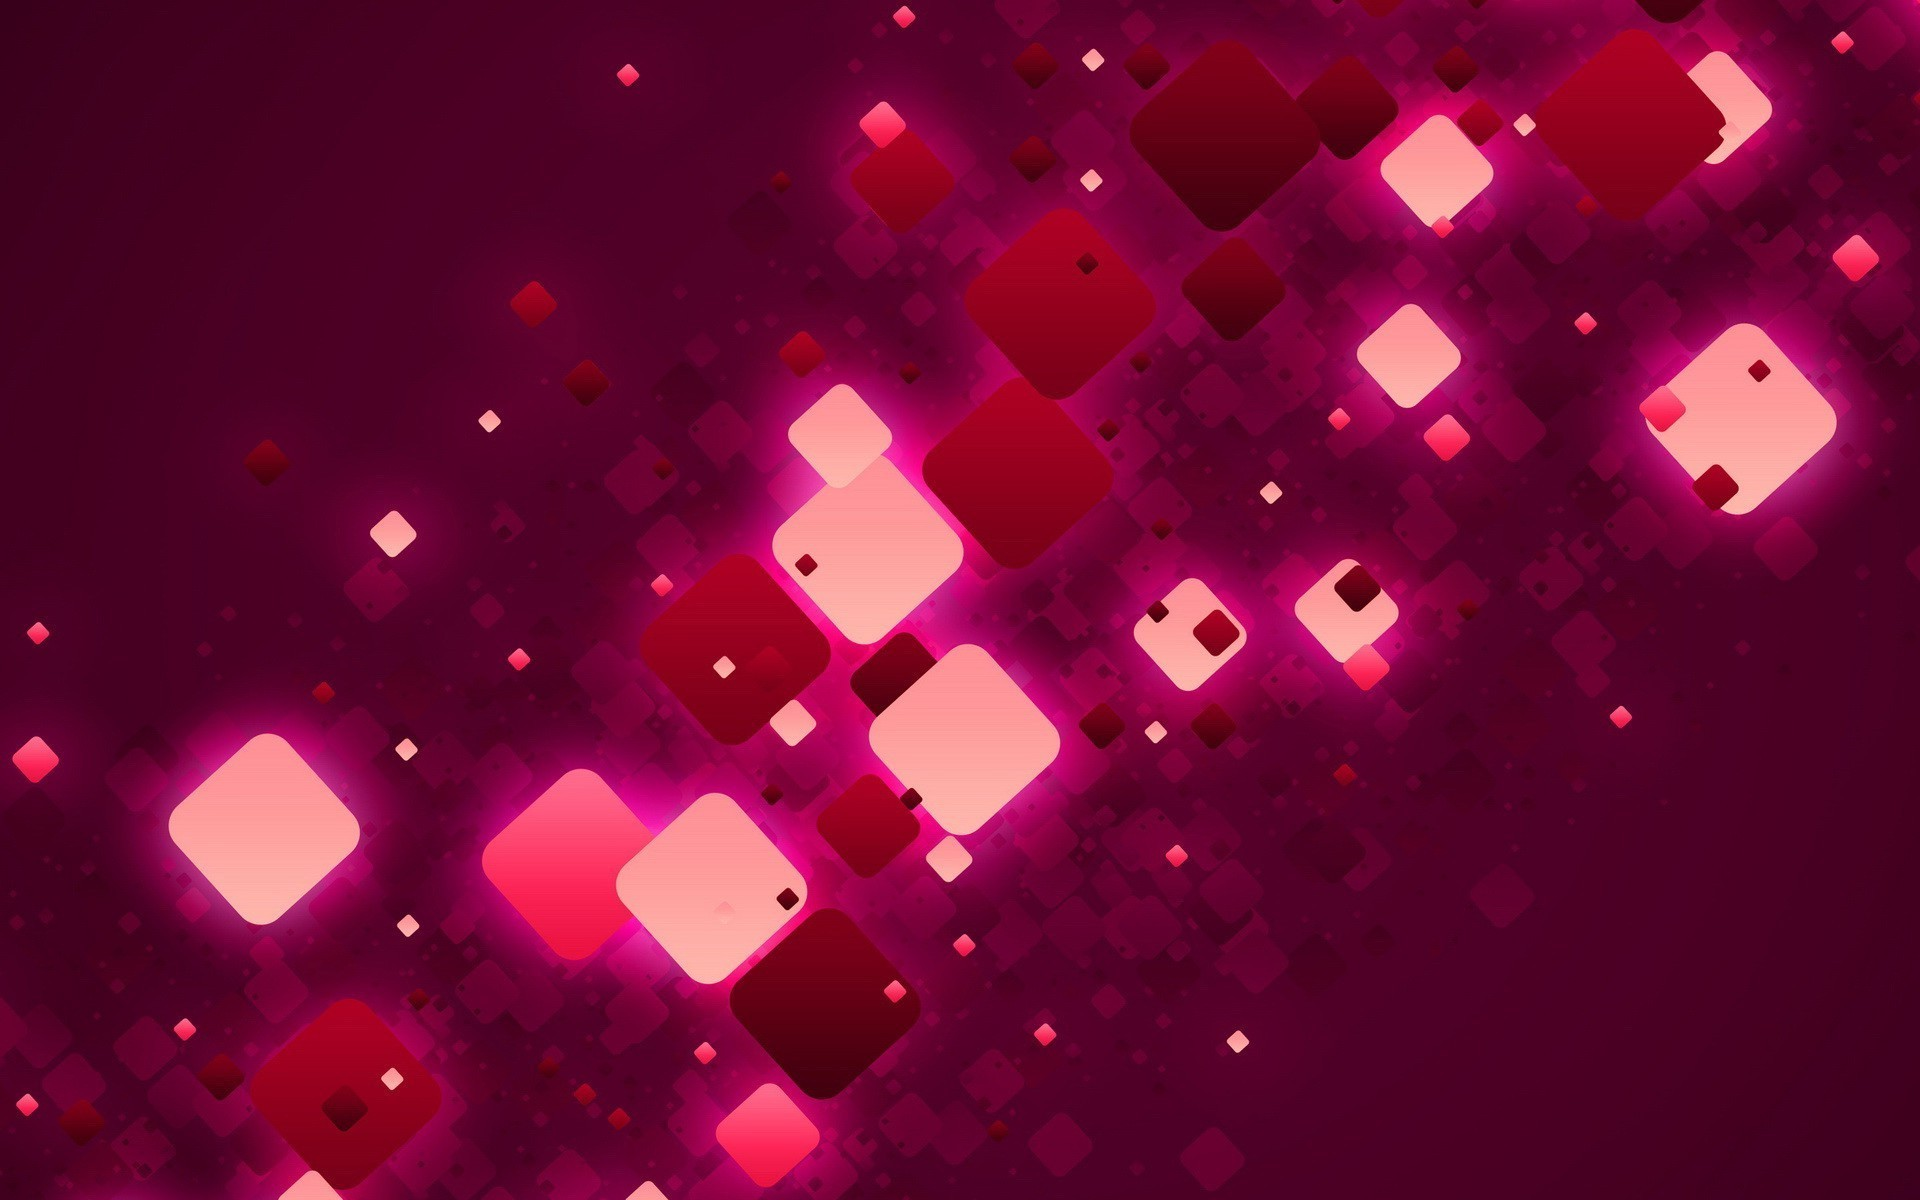 Red and pink squares abstract hd wallpaper.